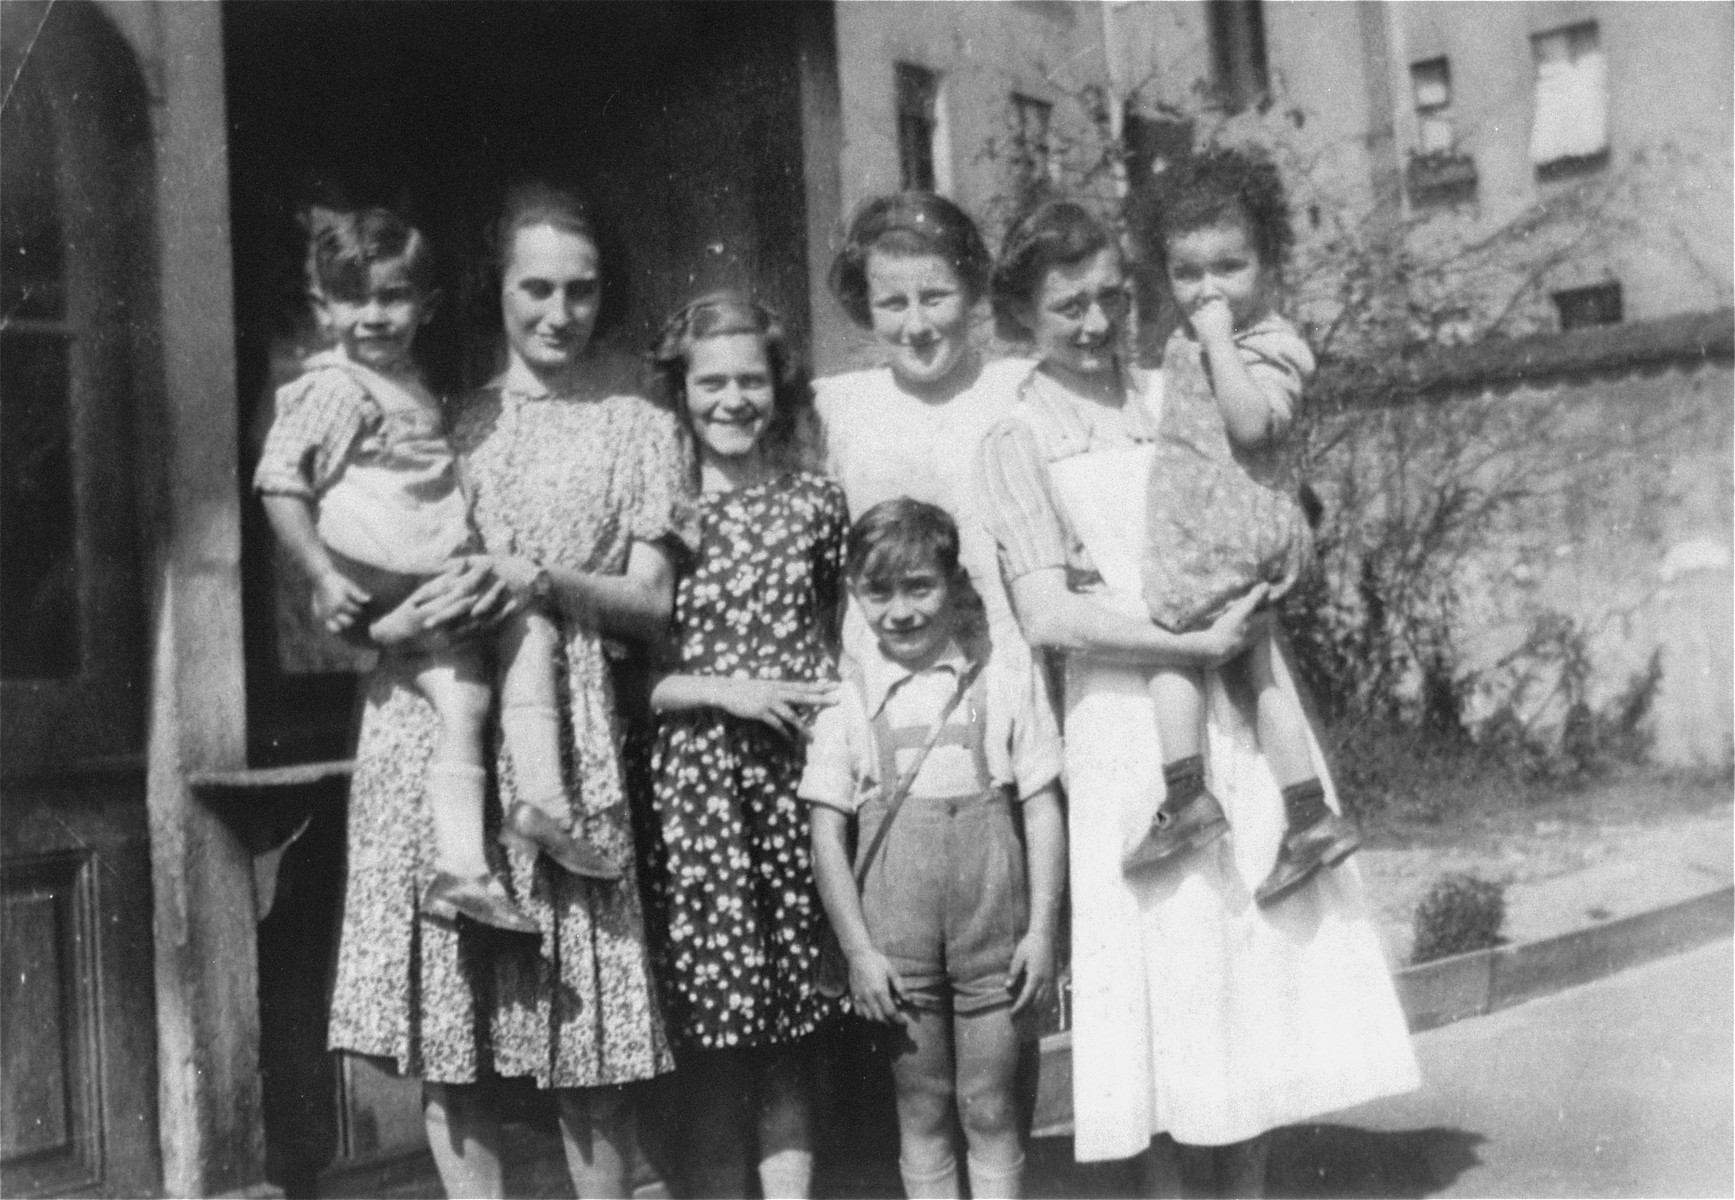 Group portrait of women and children at the Jewish Kinderheim [children's home] located at Fehrbelliner Strasse 92 in Berlin.   Among those pictured is Marion Kaufmann (right).